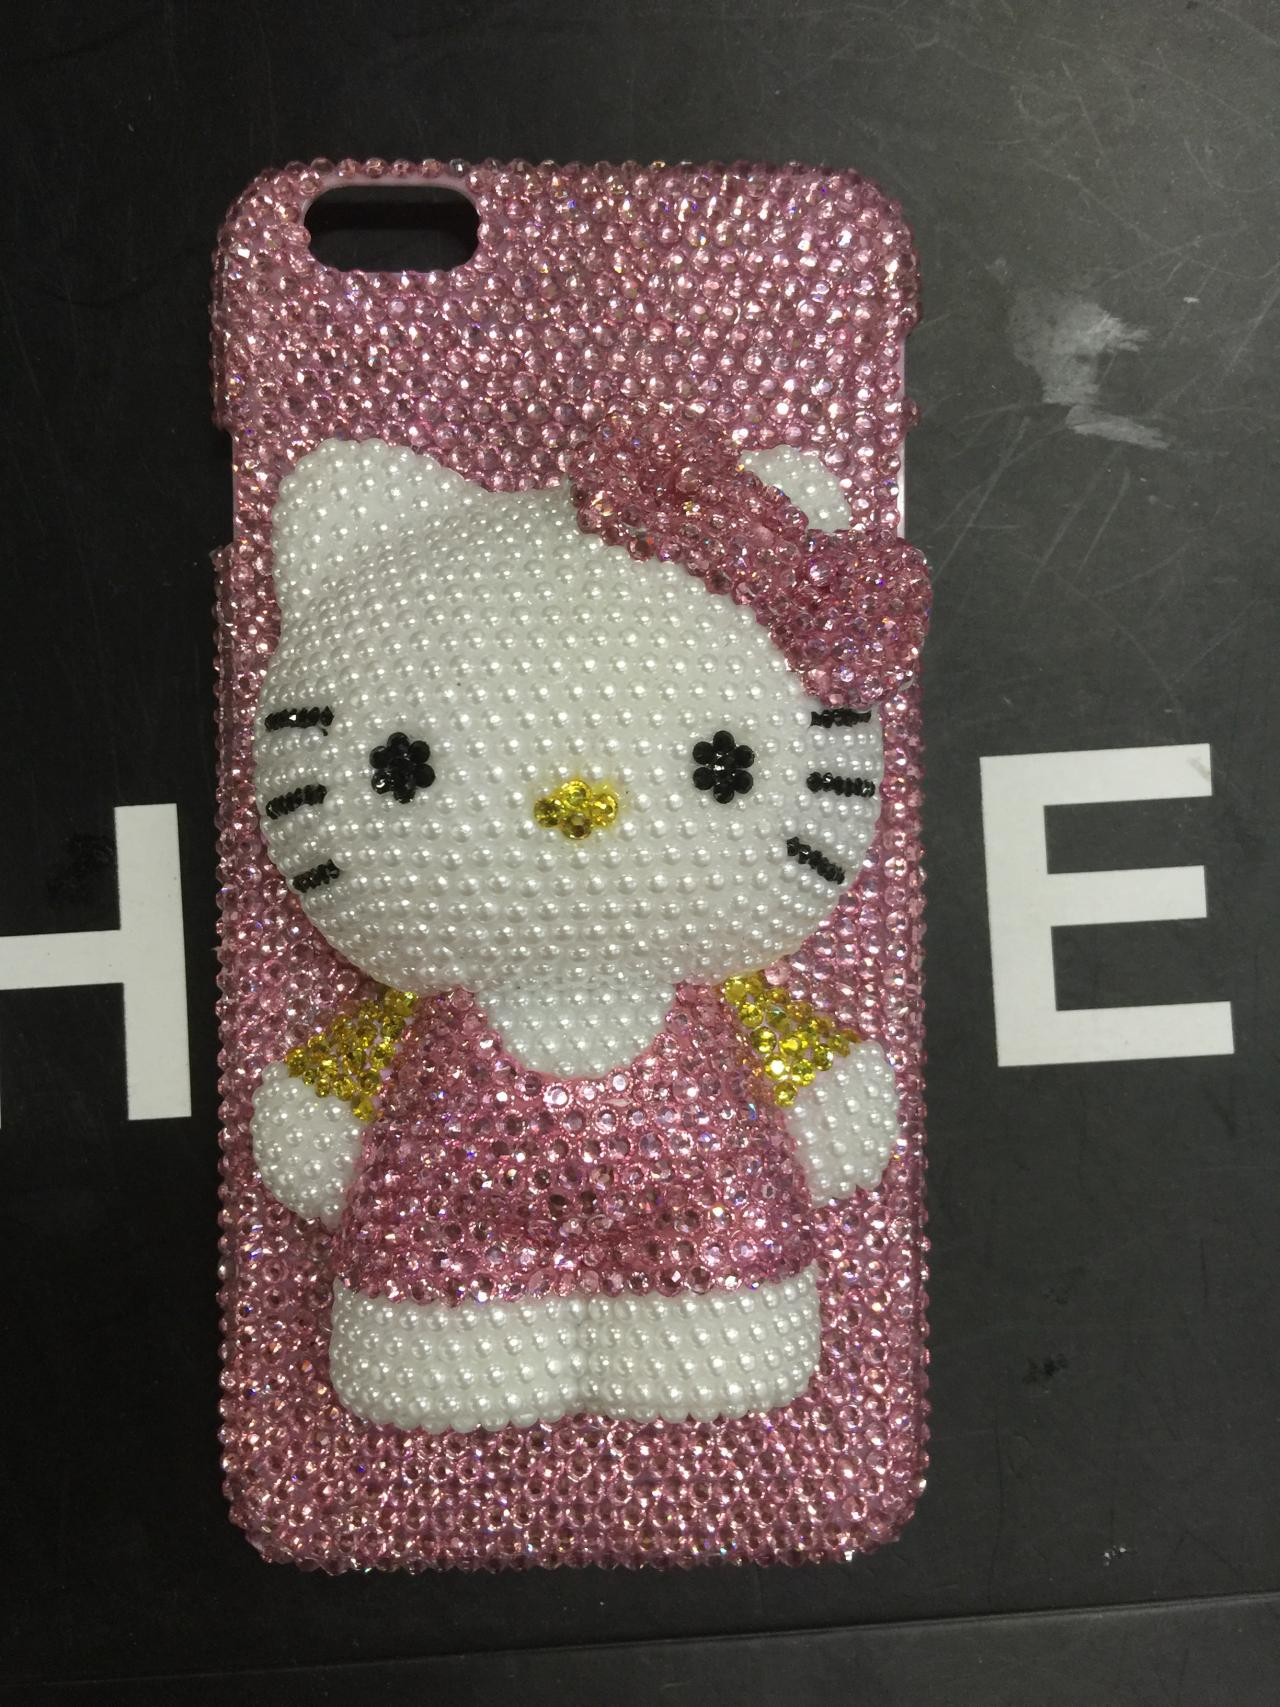 22b1c595ebf6 hello kitty iPhone 6 Case AB swarovski crystal pink rhinestone iPhone 6s  Case